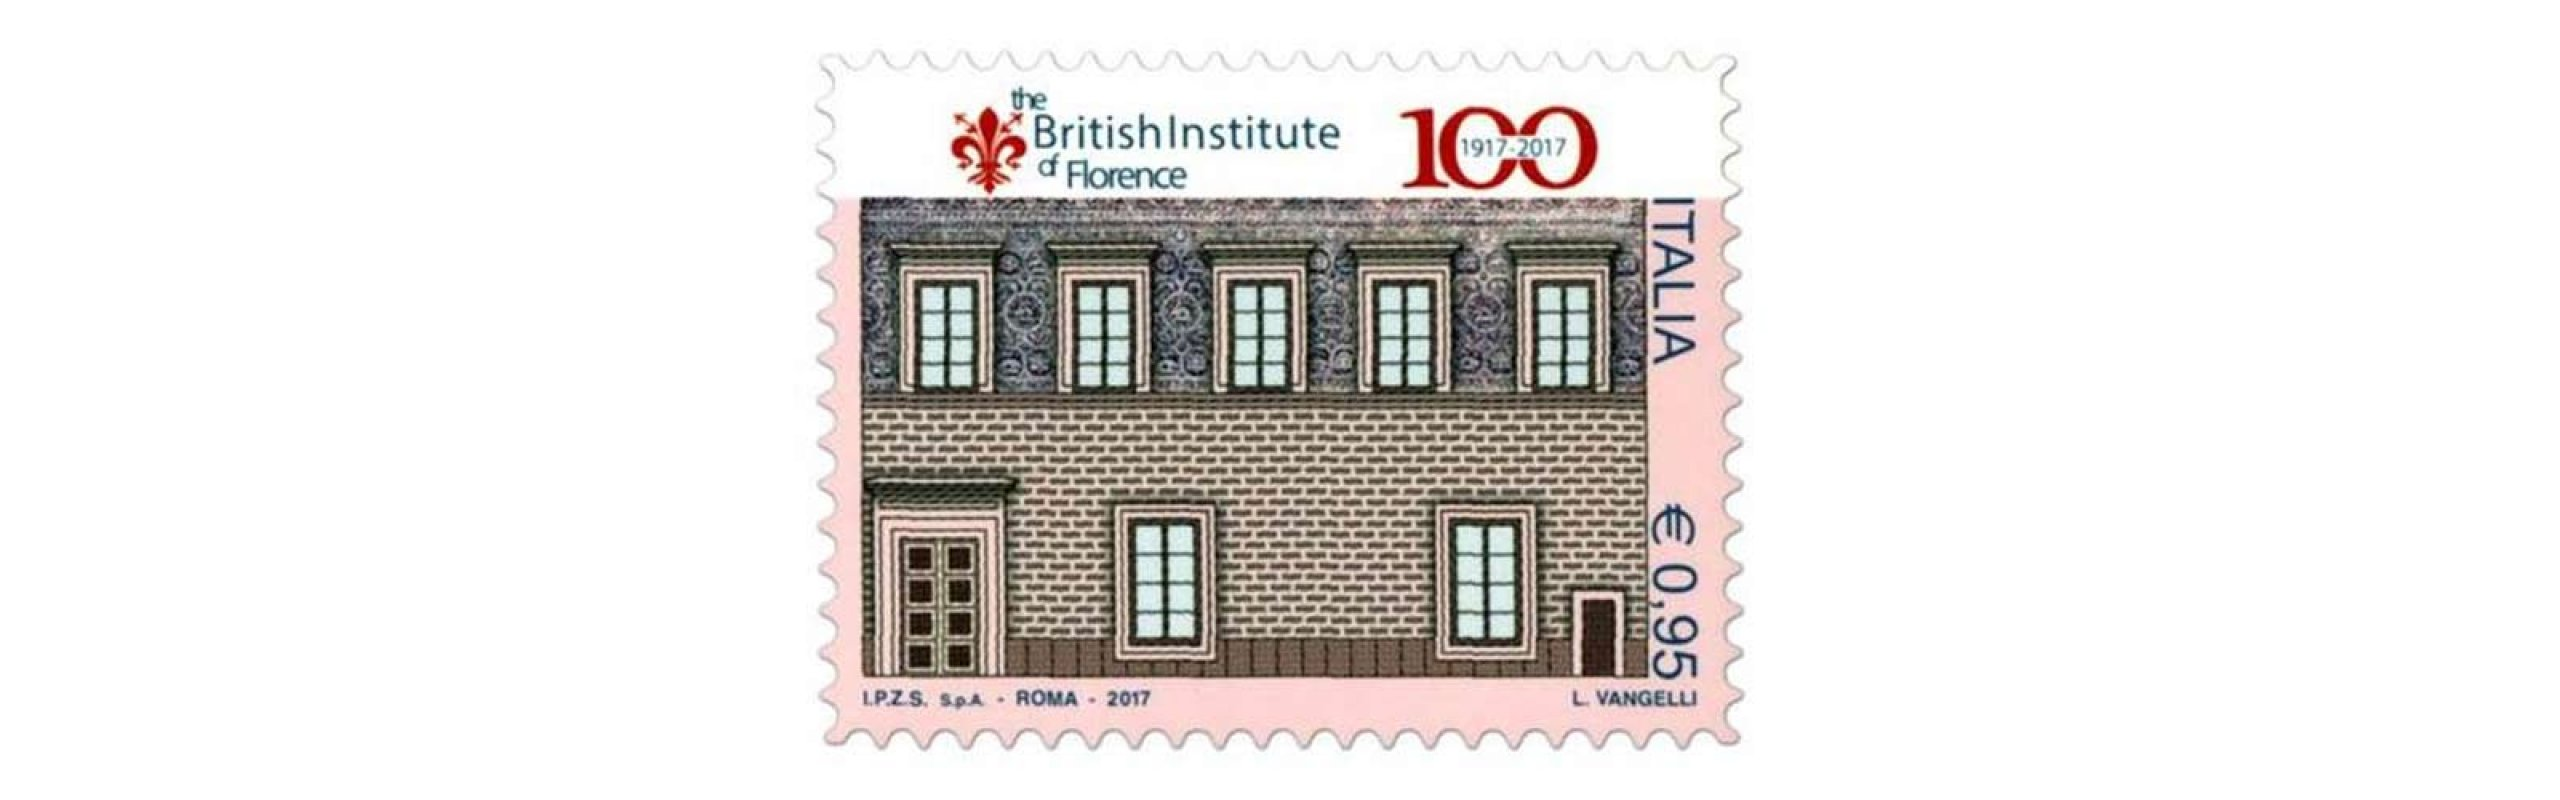 A stamp for our centenary